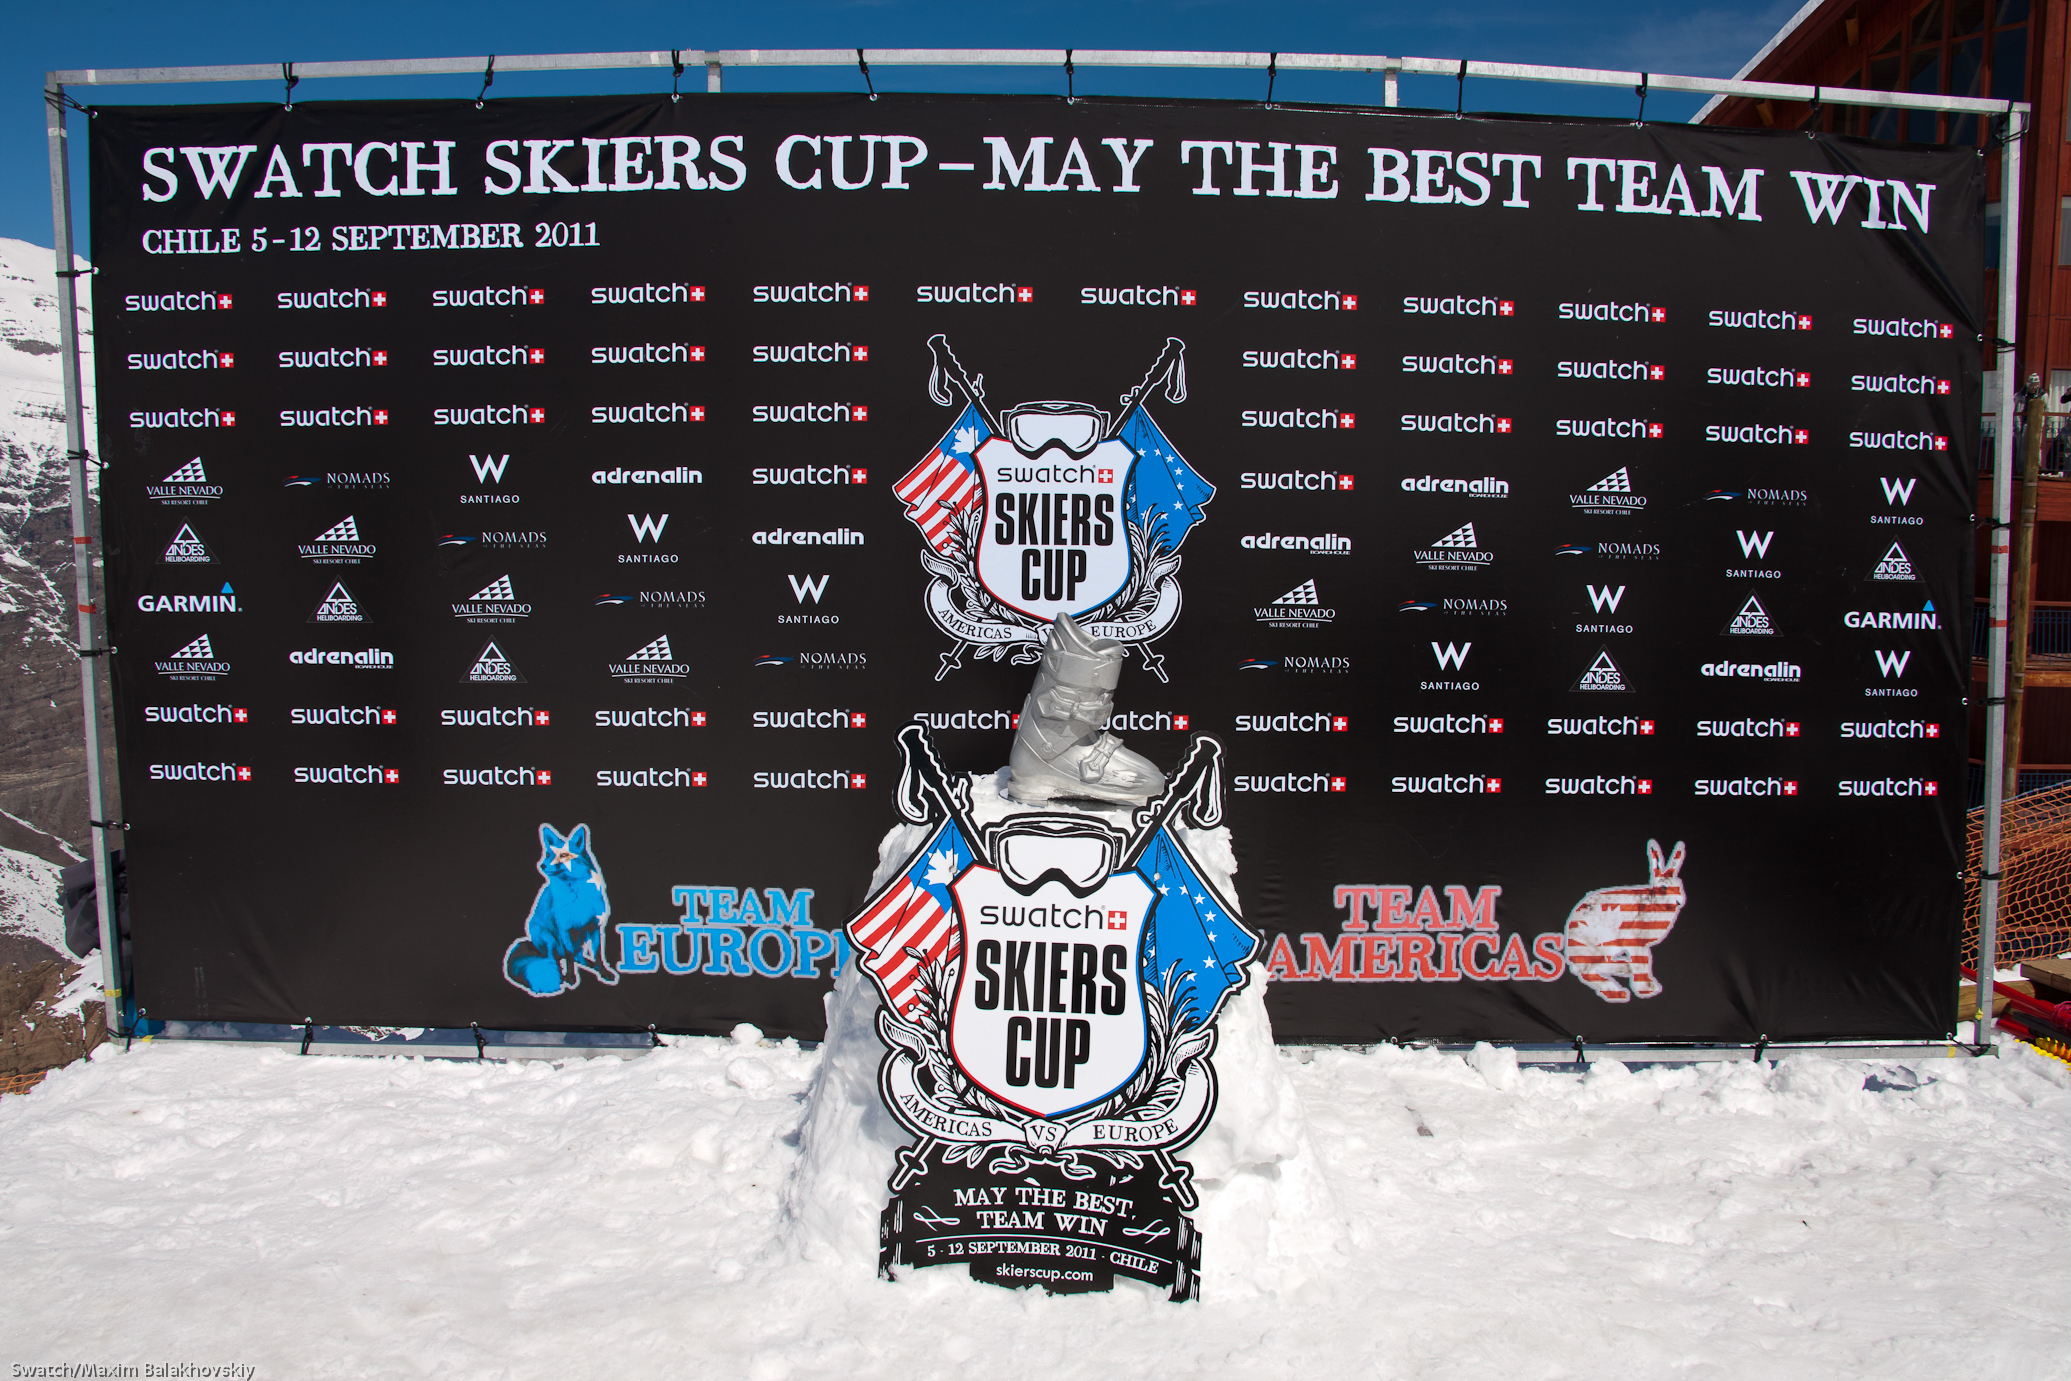 The Swatch Skiers Cup